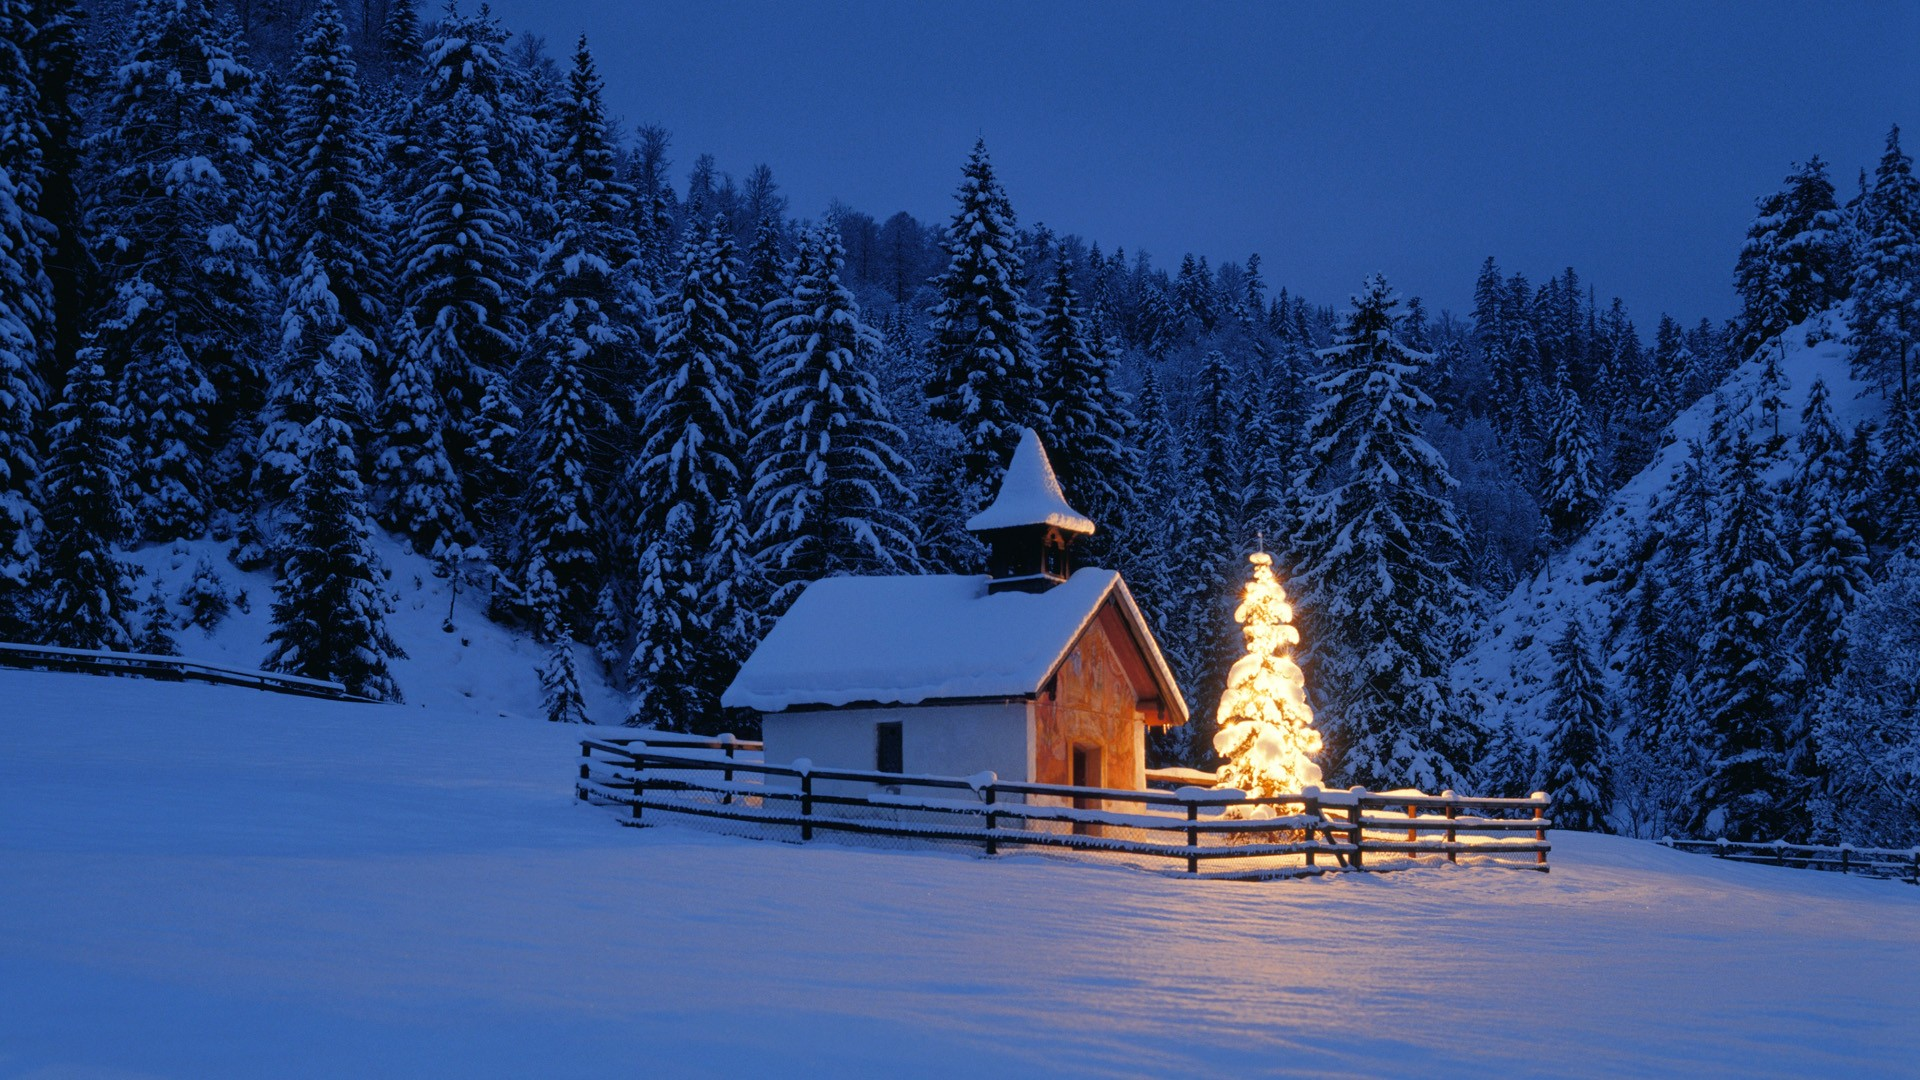 Winter Wallpapers Backgrounds HD download 1920x1080